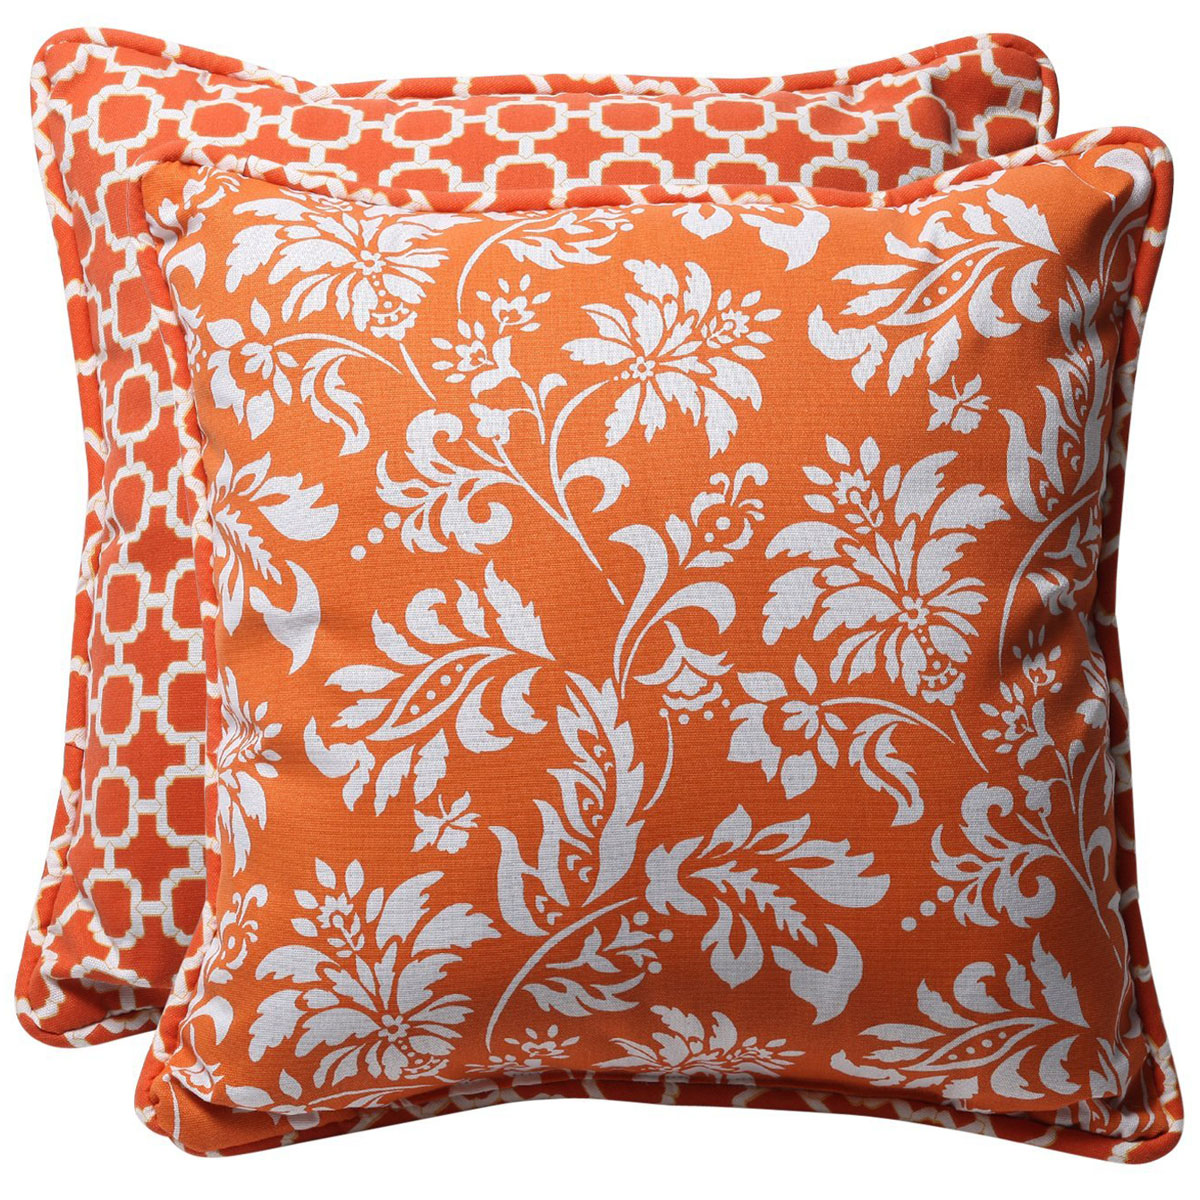 Images For Decorative Pillows : Decorative Pillows for Sofa Home Decorator Shop